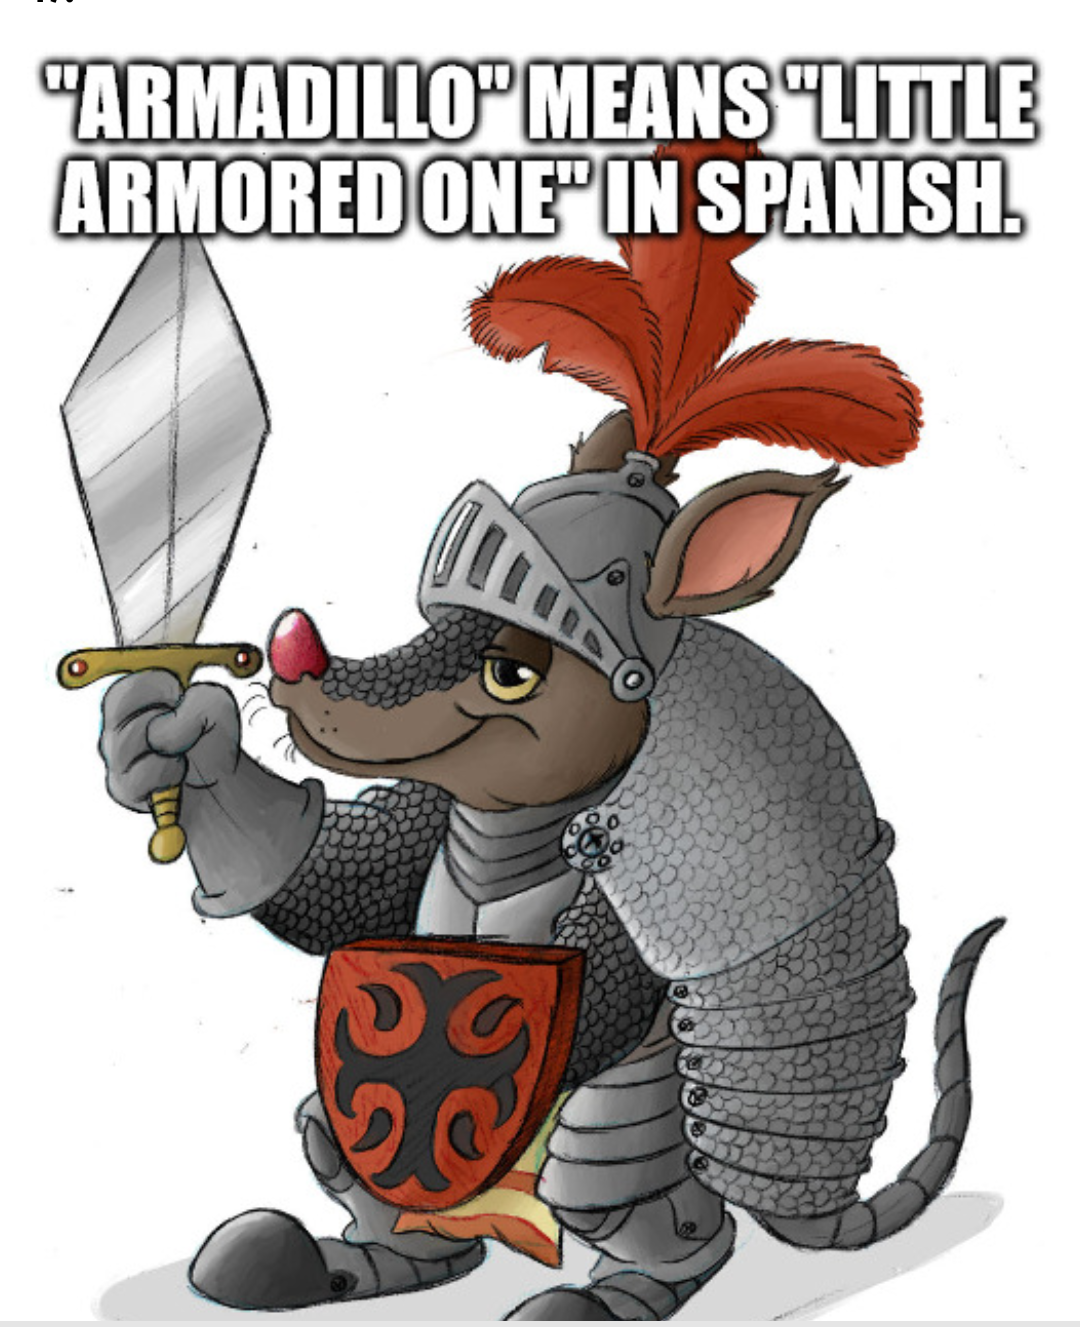 Little Armored One